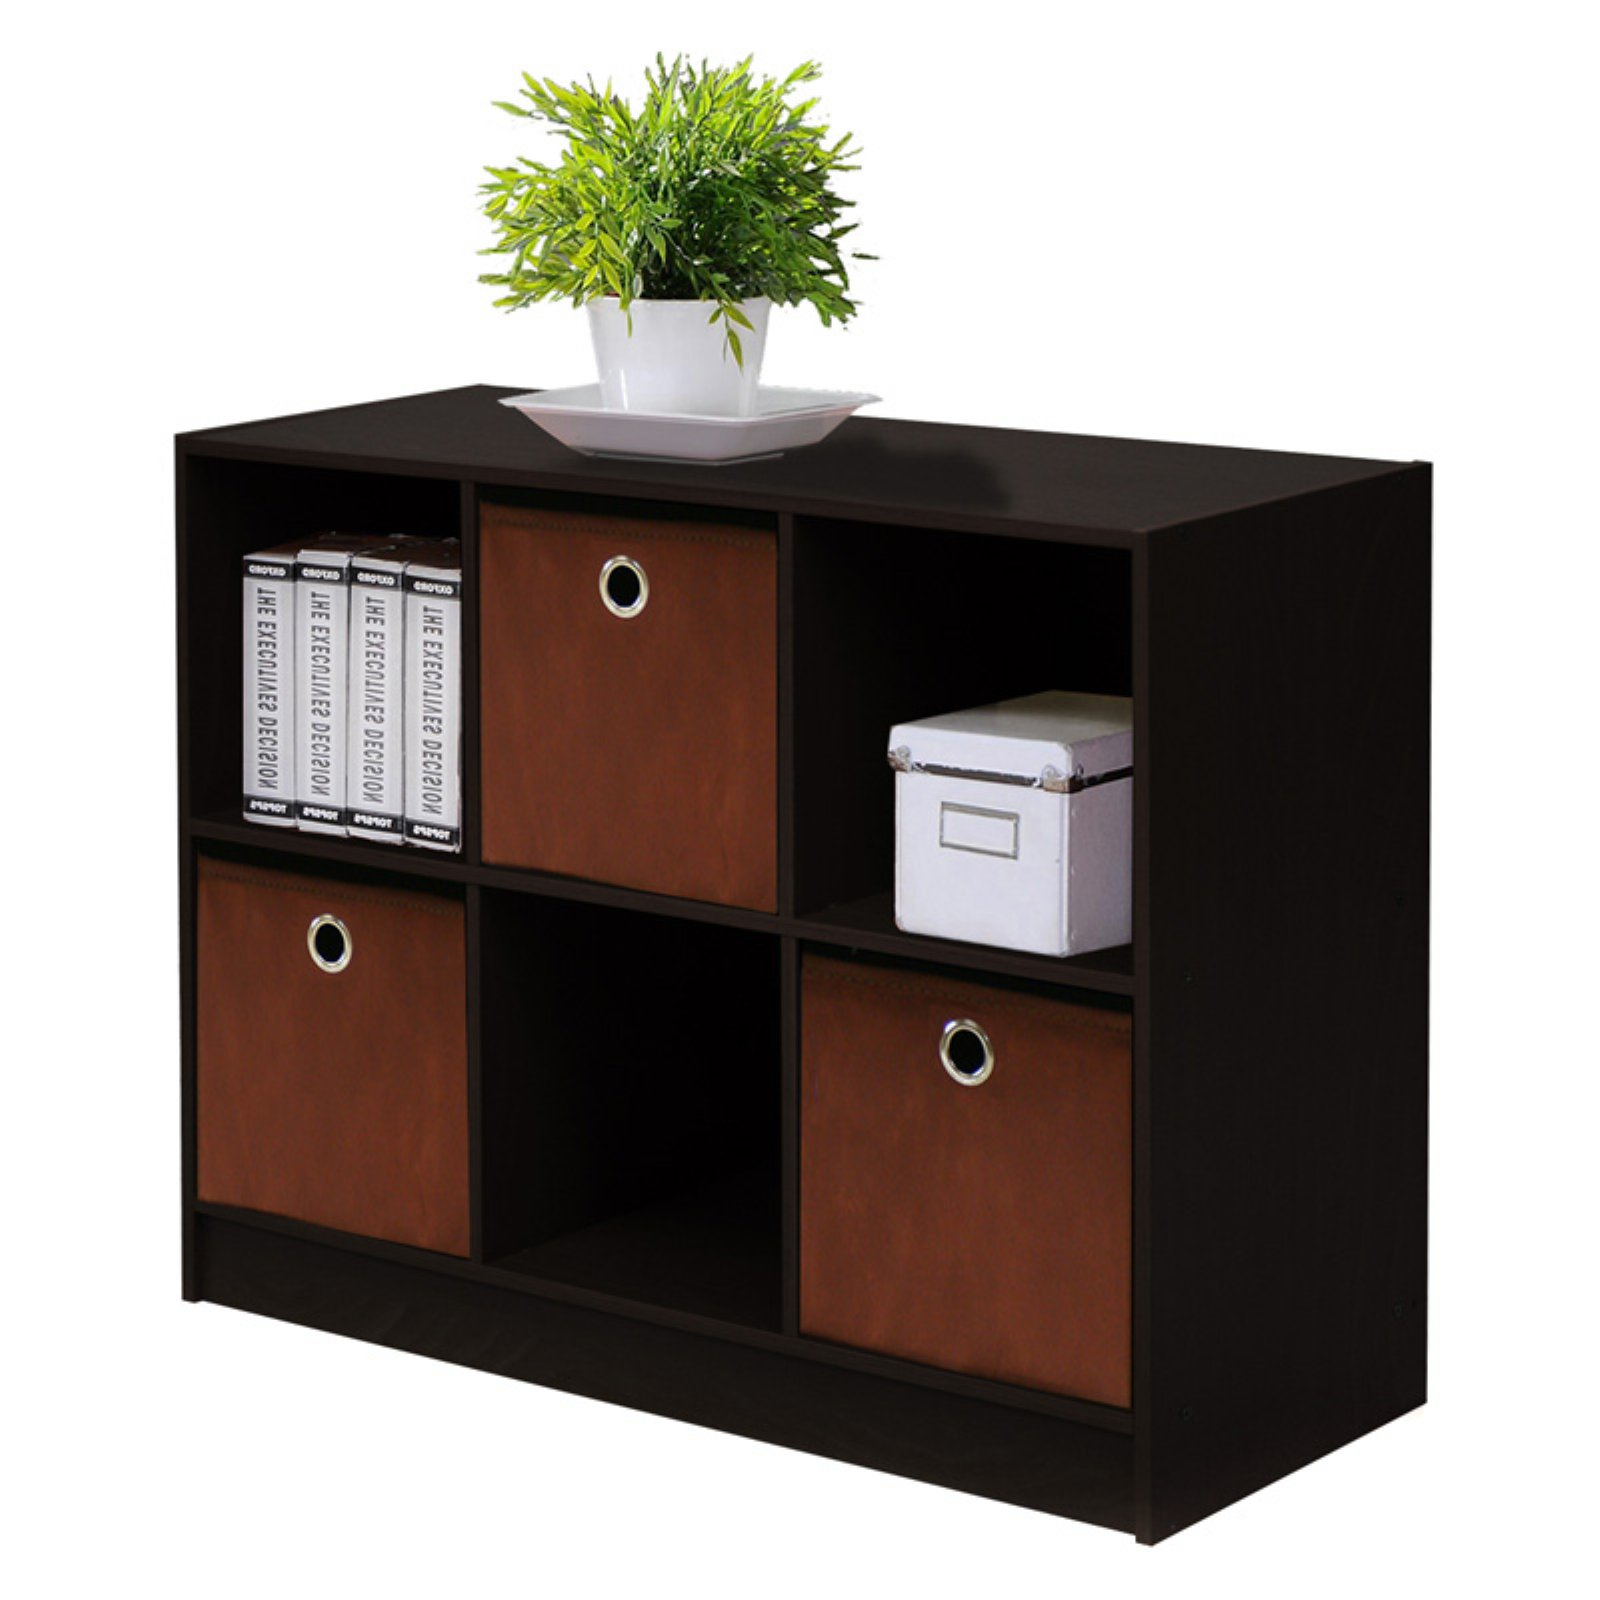 Furinno Basic 3x2 Bookcase Storage w/Bins, Multiple Colors